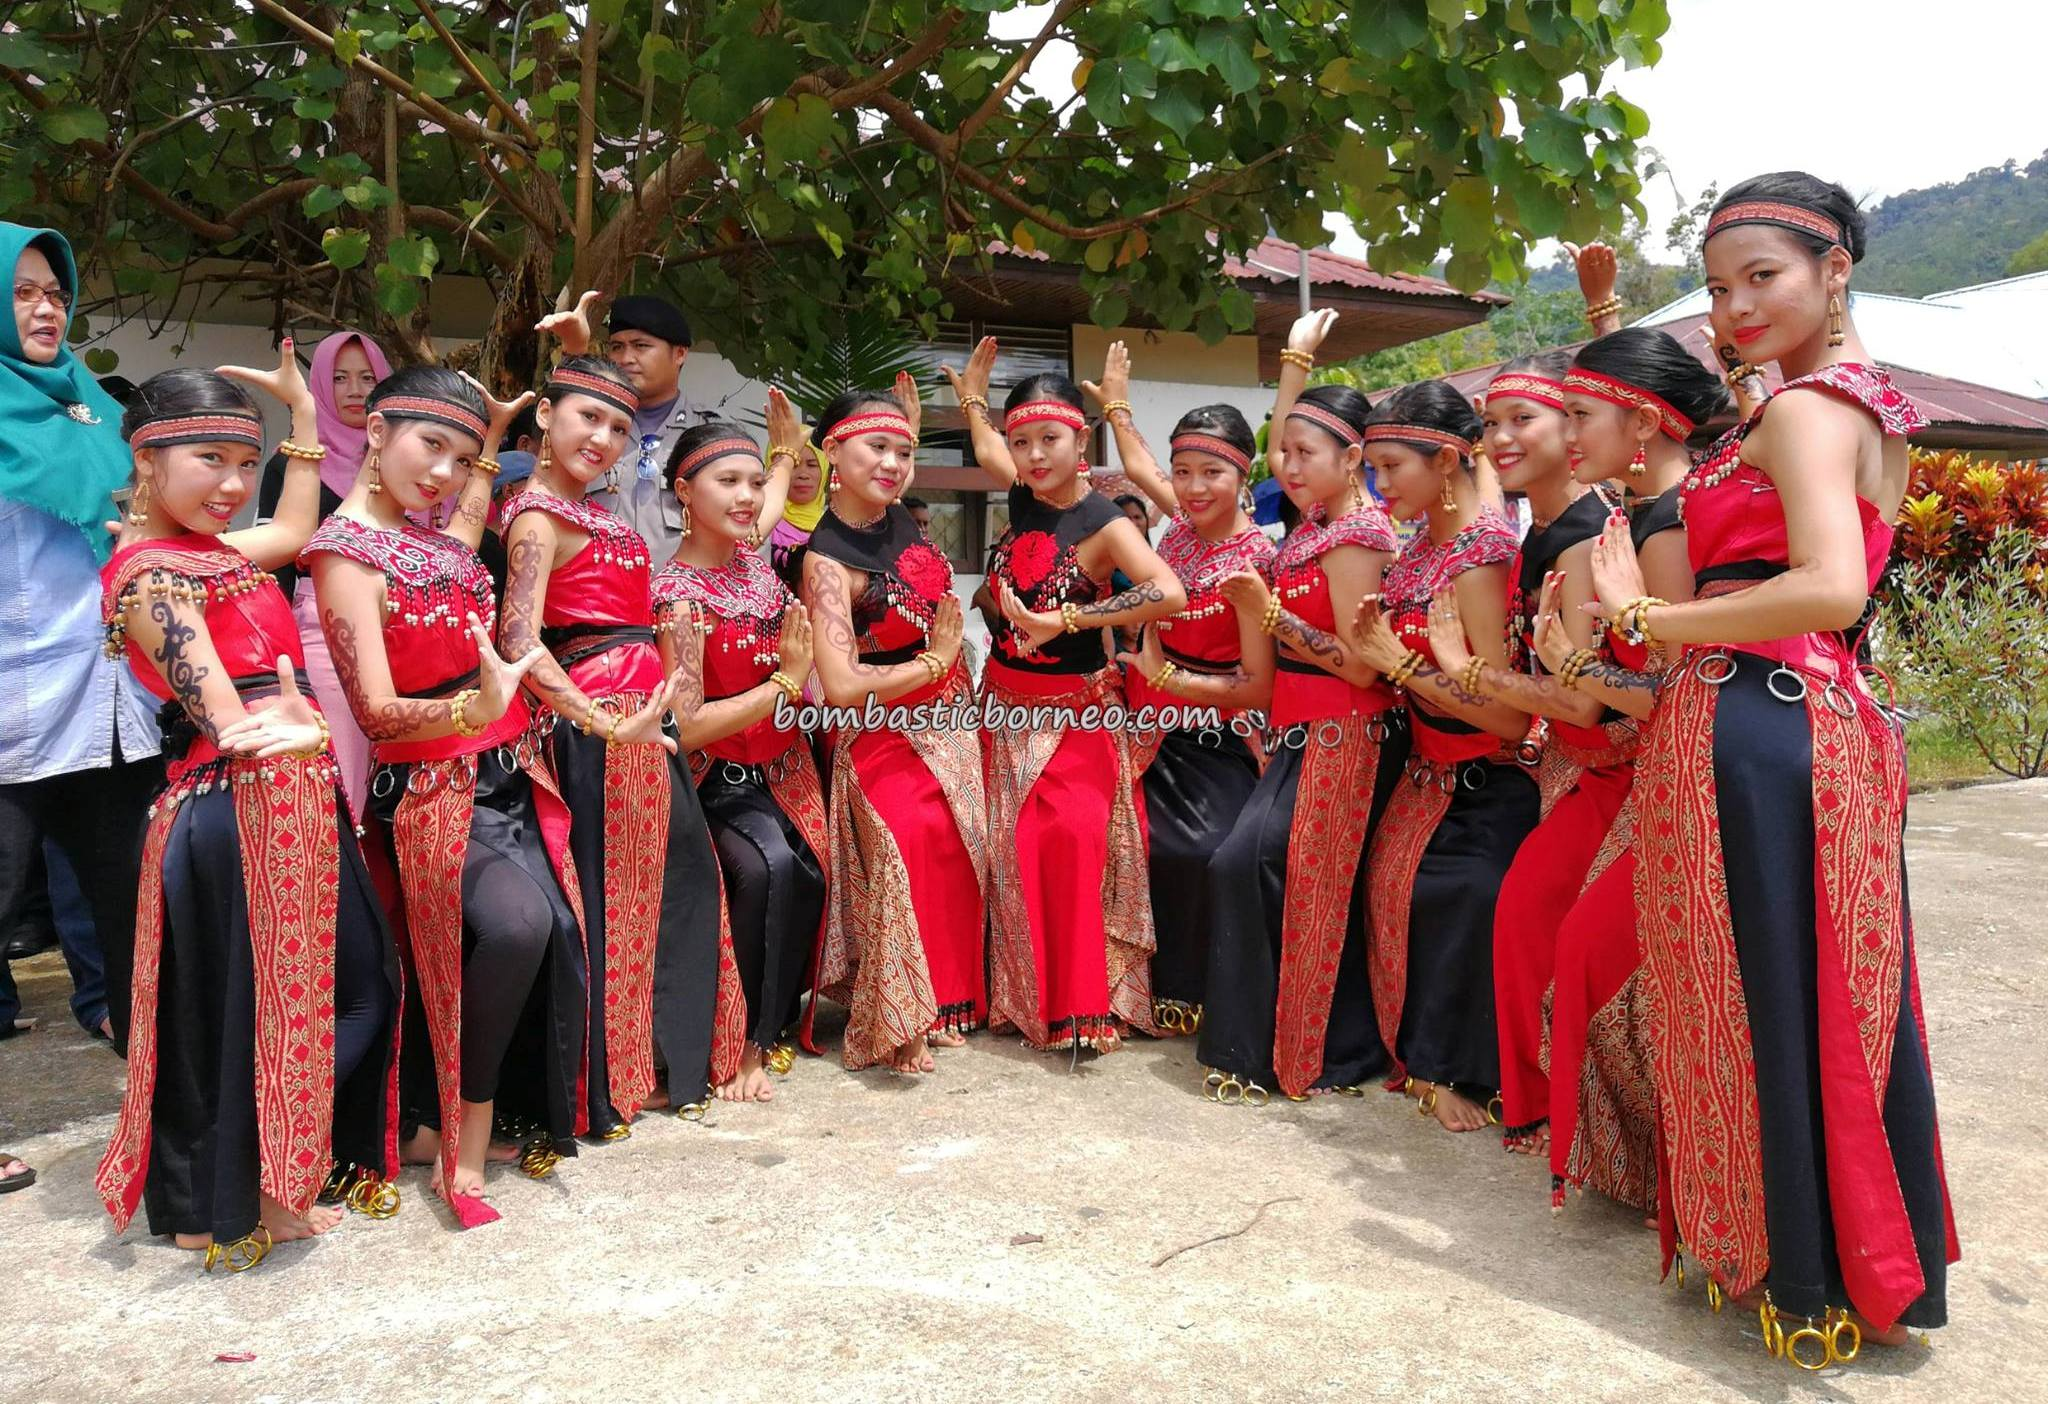 Betung Kerihun, event, backpackers, Kapuas Hulu, Kalimantan Barat, Borneo, dayak, tribe, native, Tourism, traditional, transborder, travel guide, 原著民, 西加里曼丹